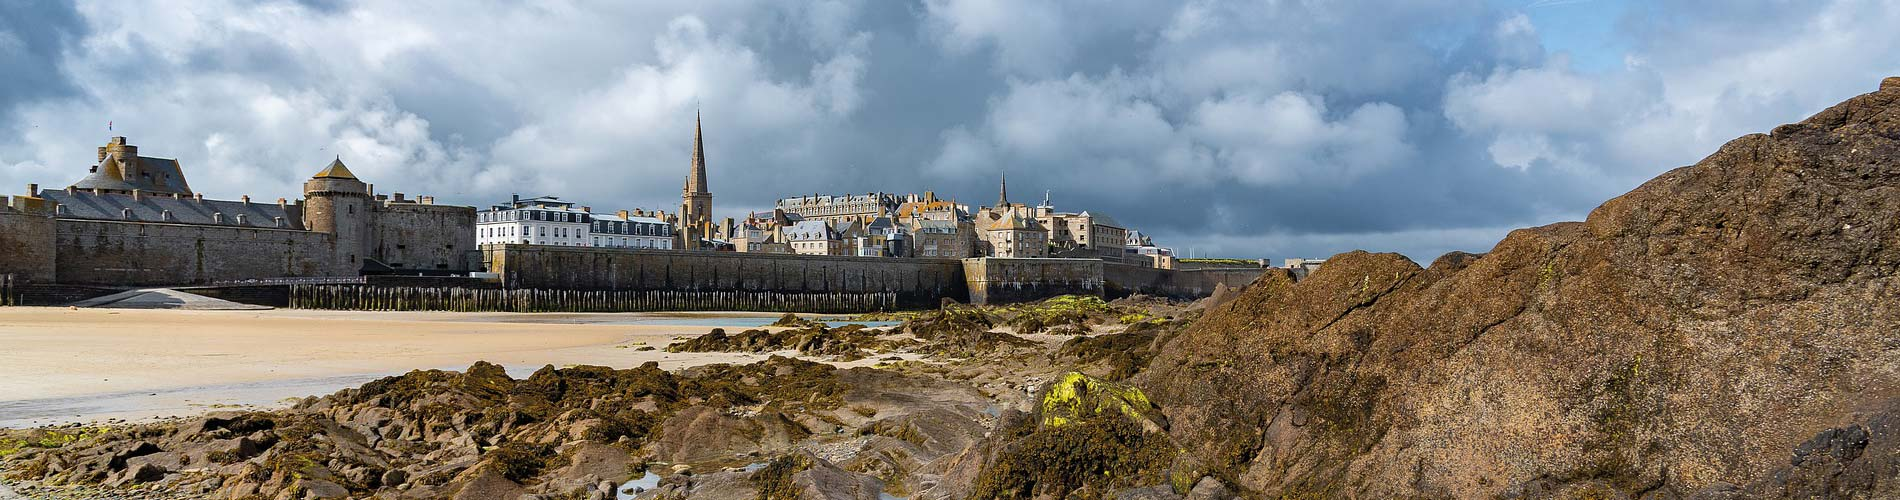 Blog_20for20_Brittany-France_1900x500_Q120